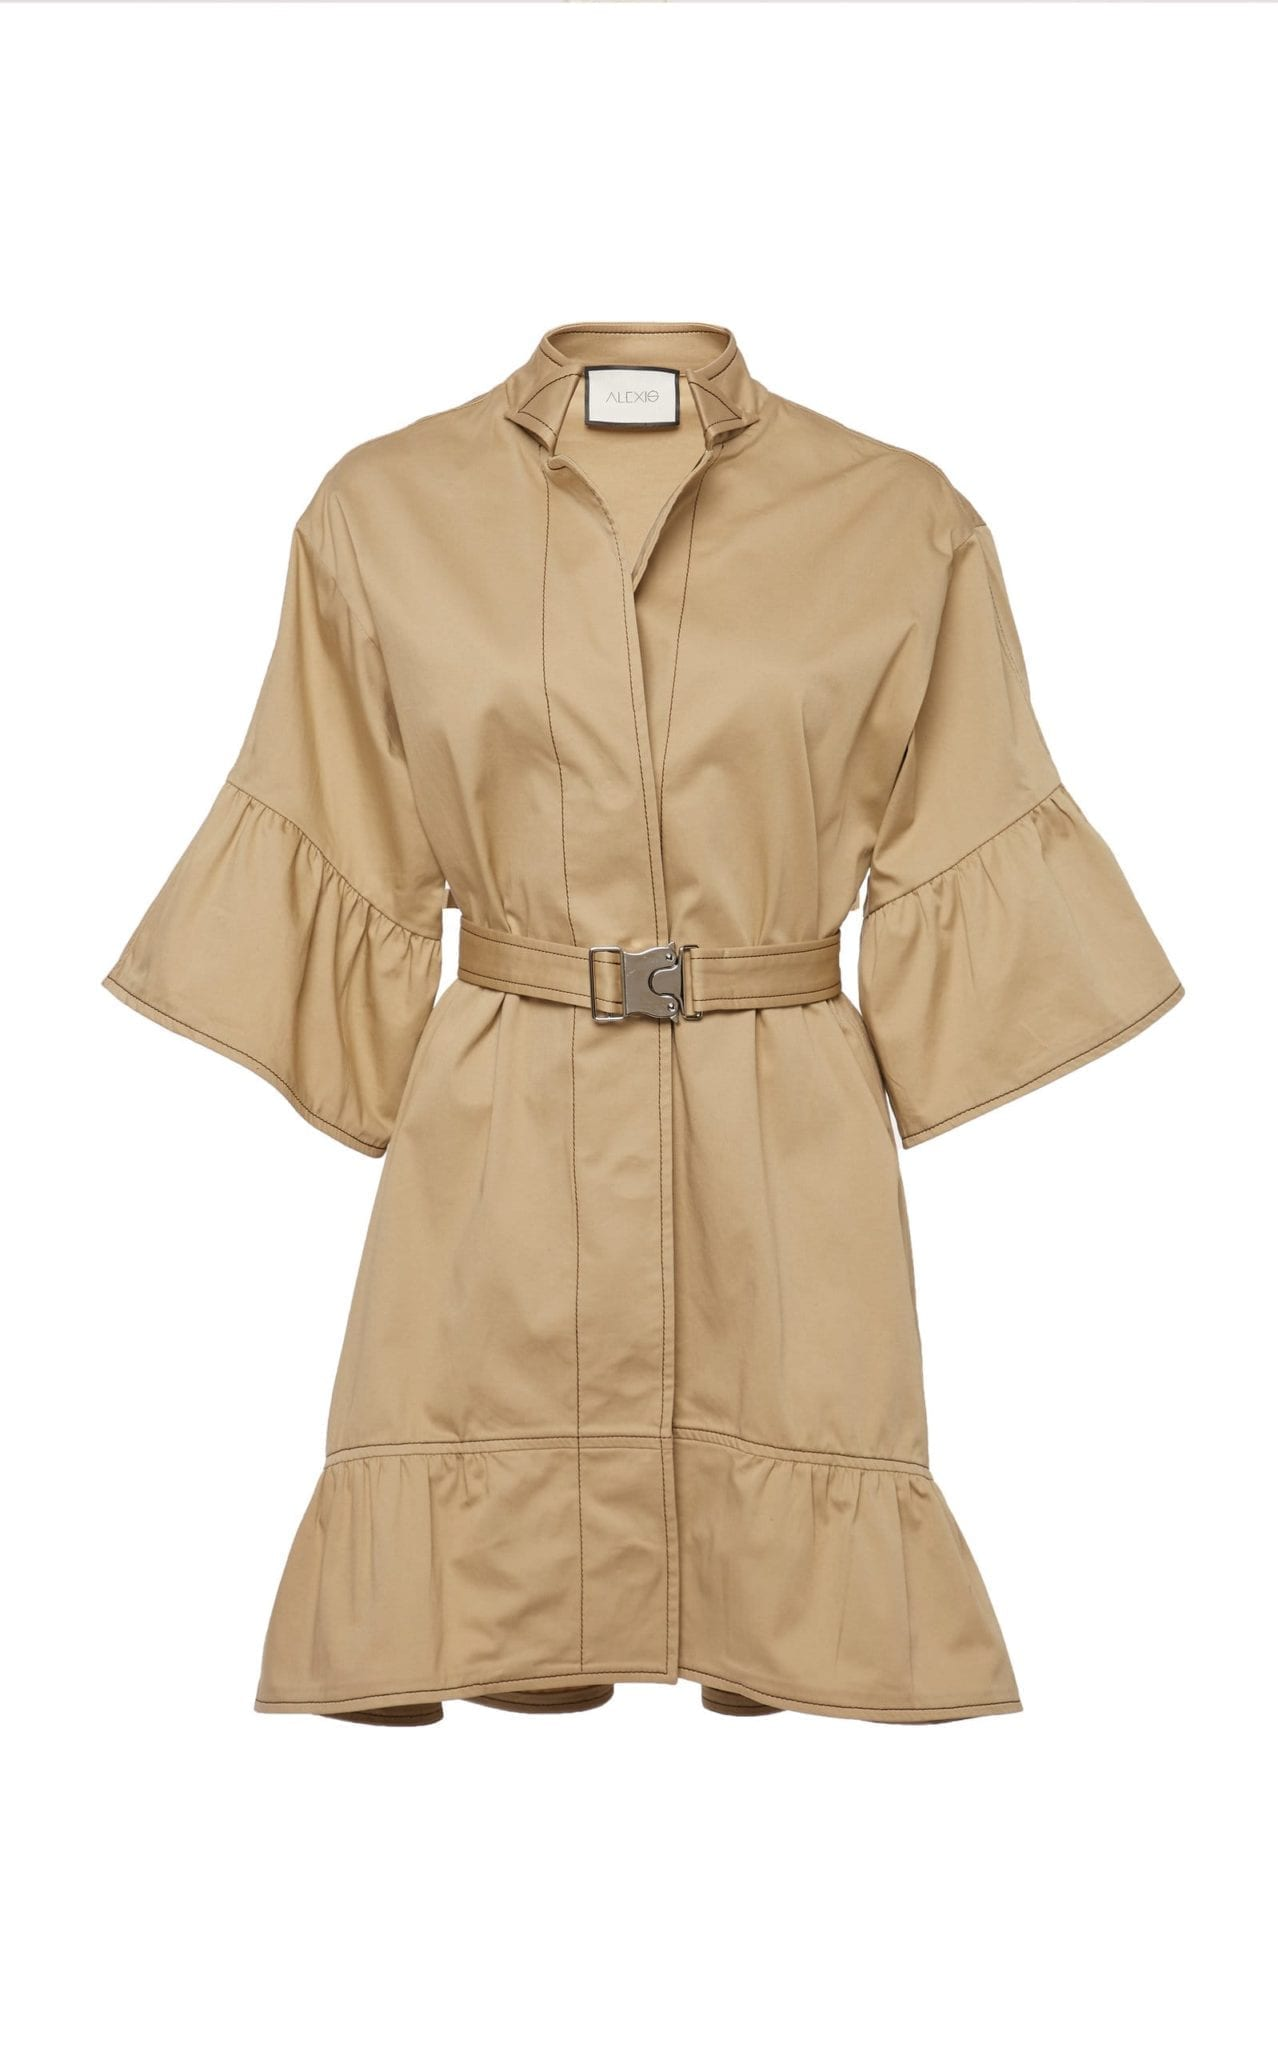 ALEXIS Mariano Belted Cotton-Blend Mini Dress